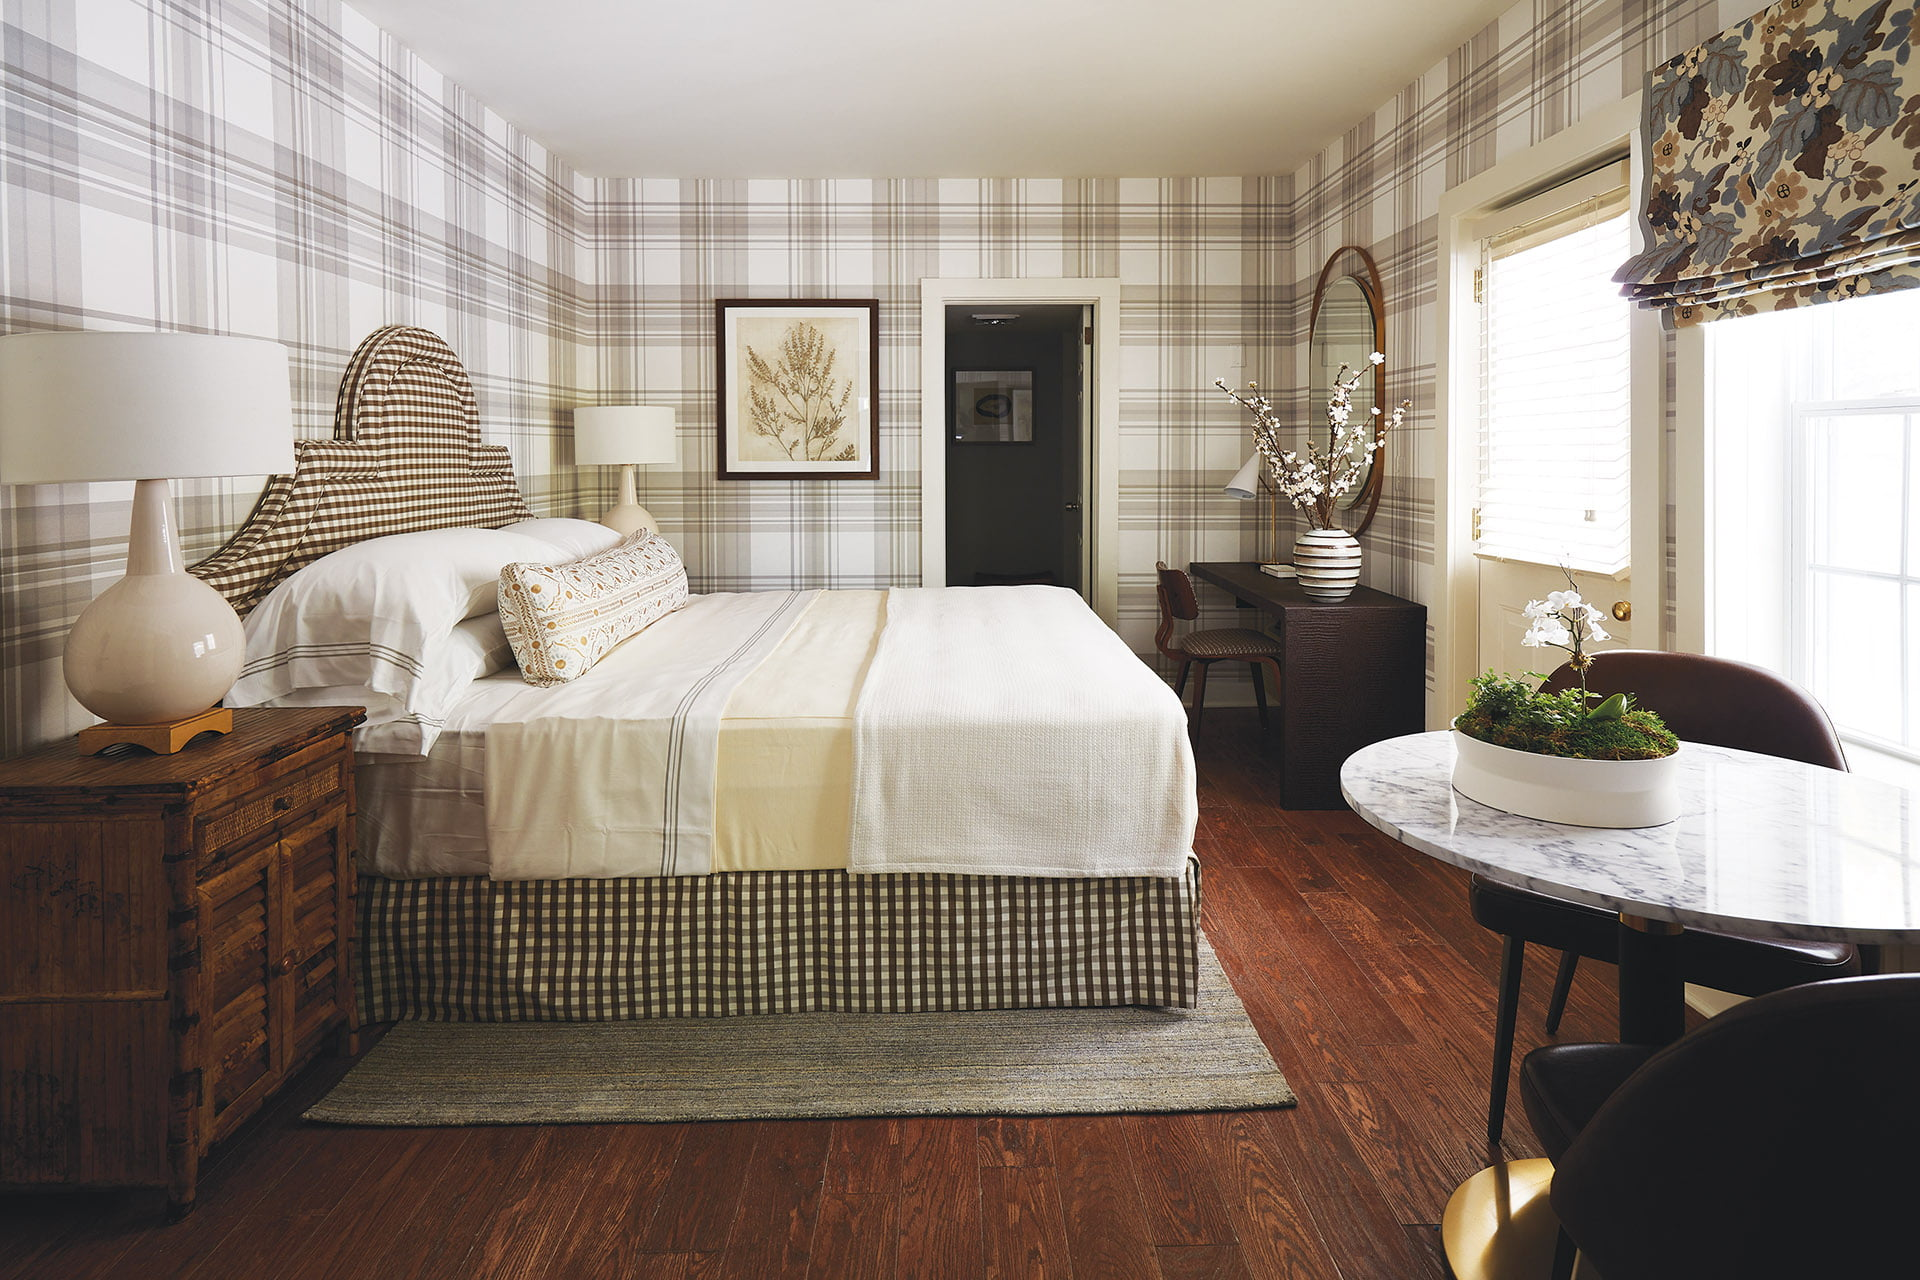 British style bedroom with checks and plaids dominating a floral window shade.